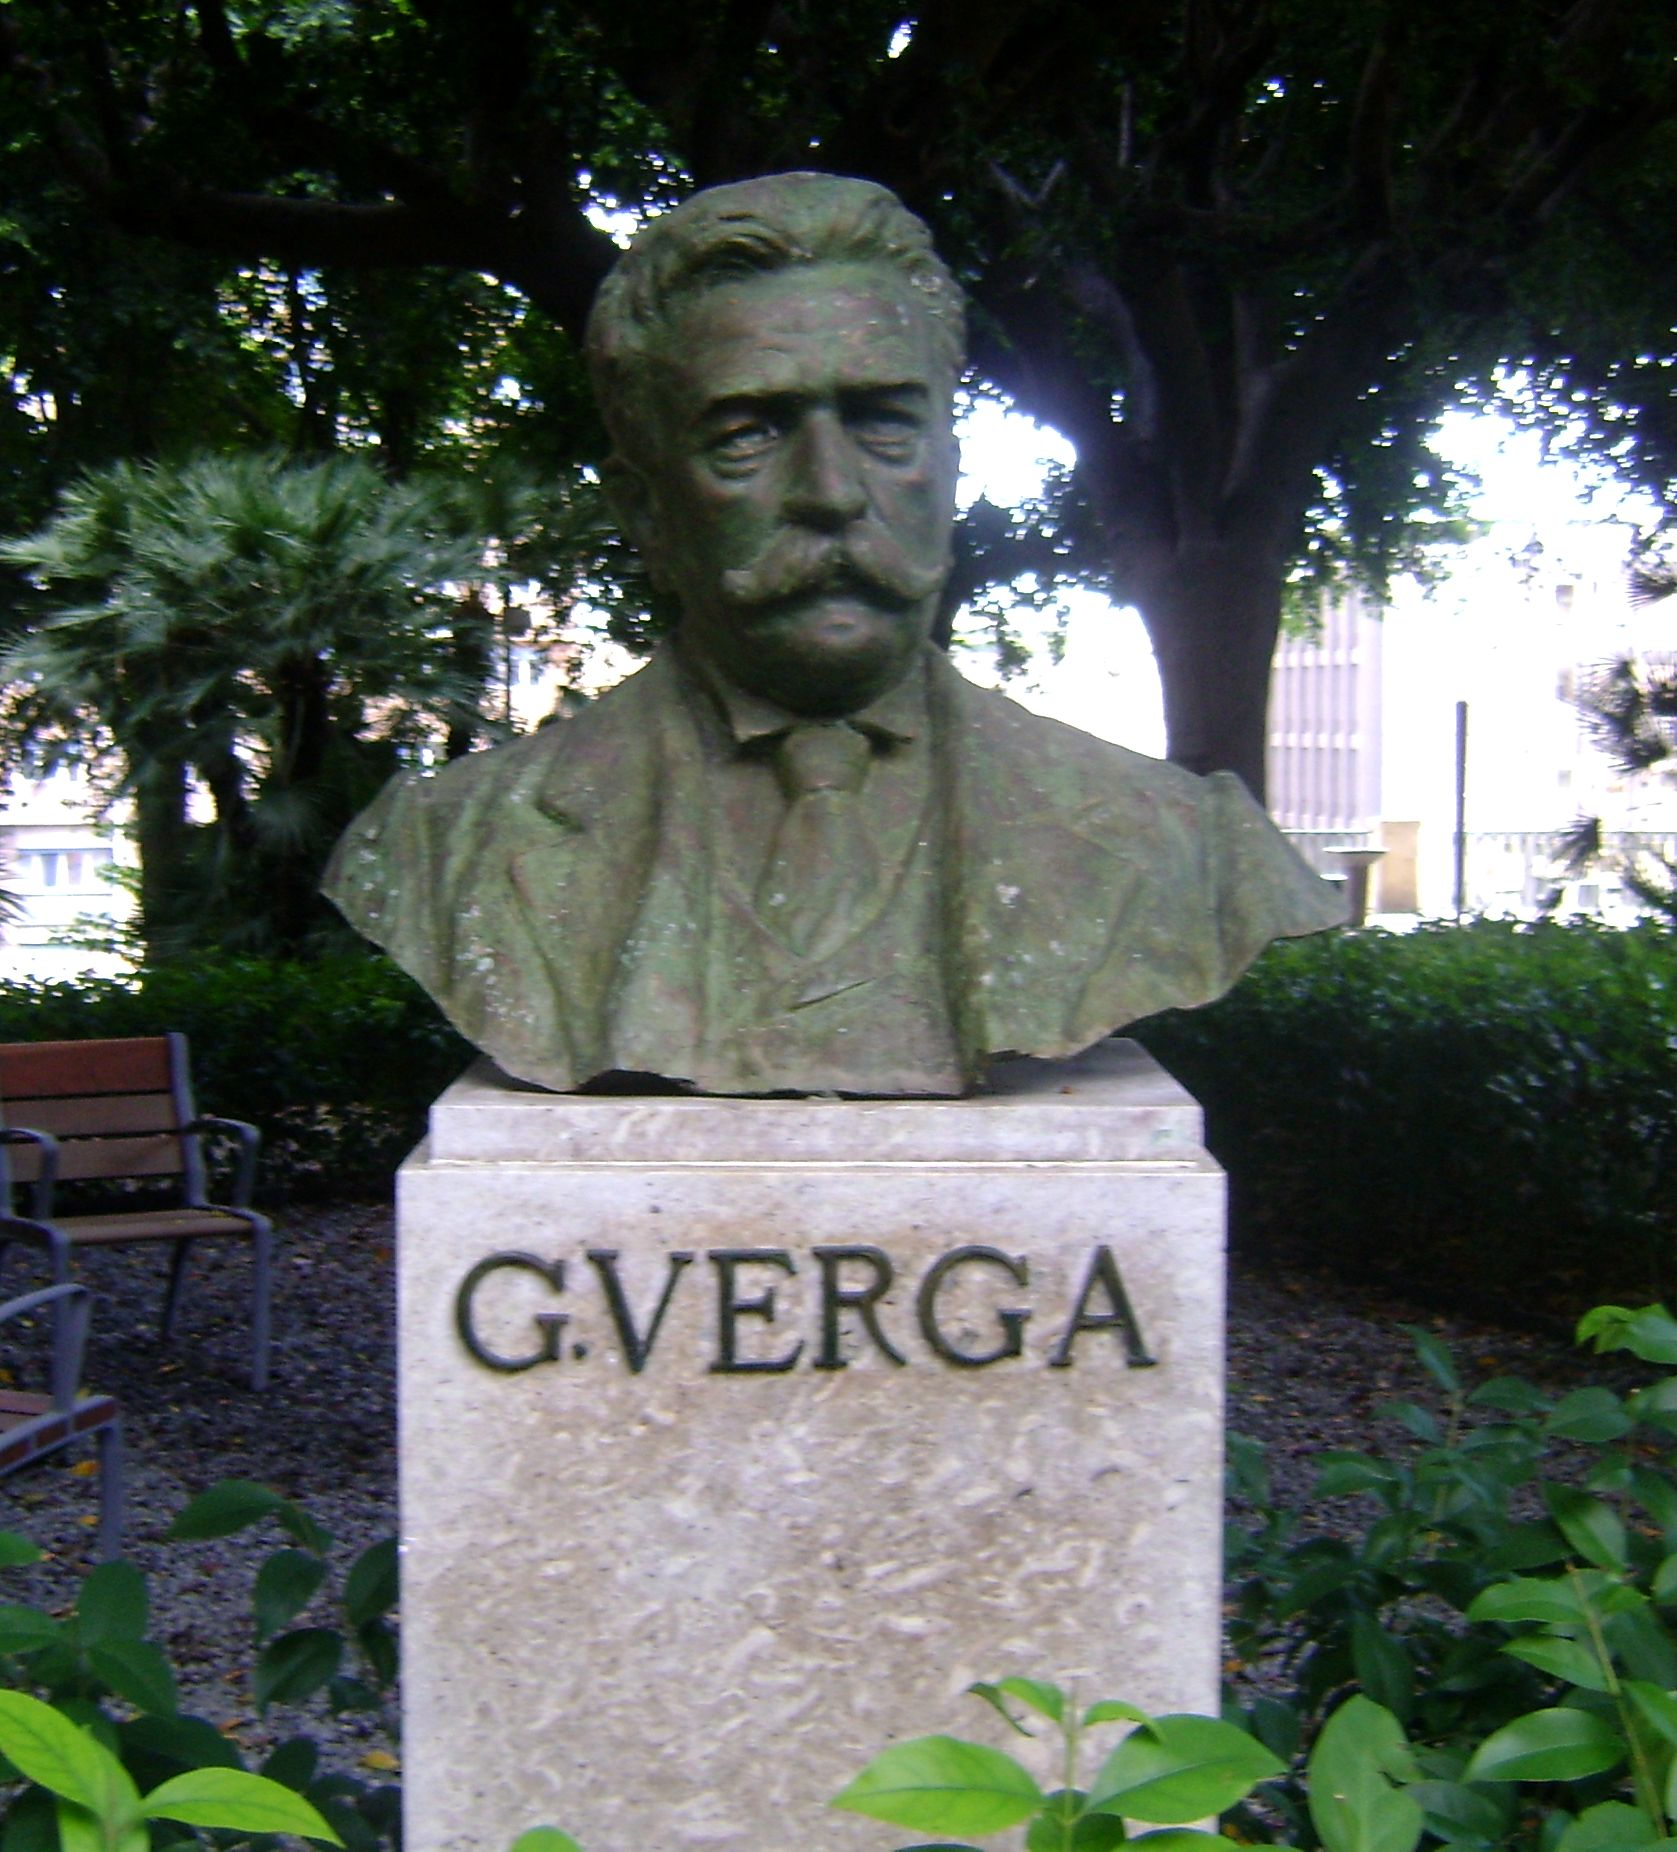 https://upload.wikimedia.org/wikipedia/commons/1/1b/Verga.jpg